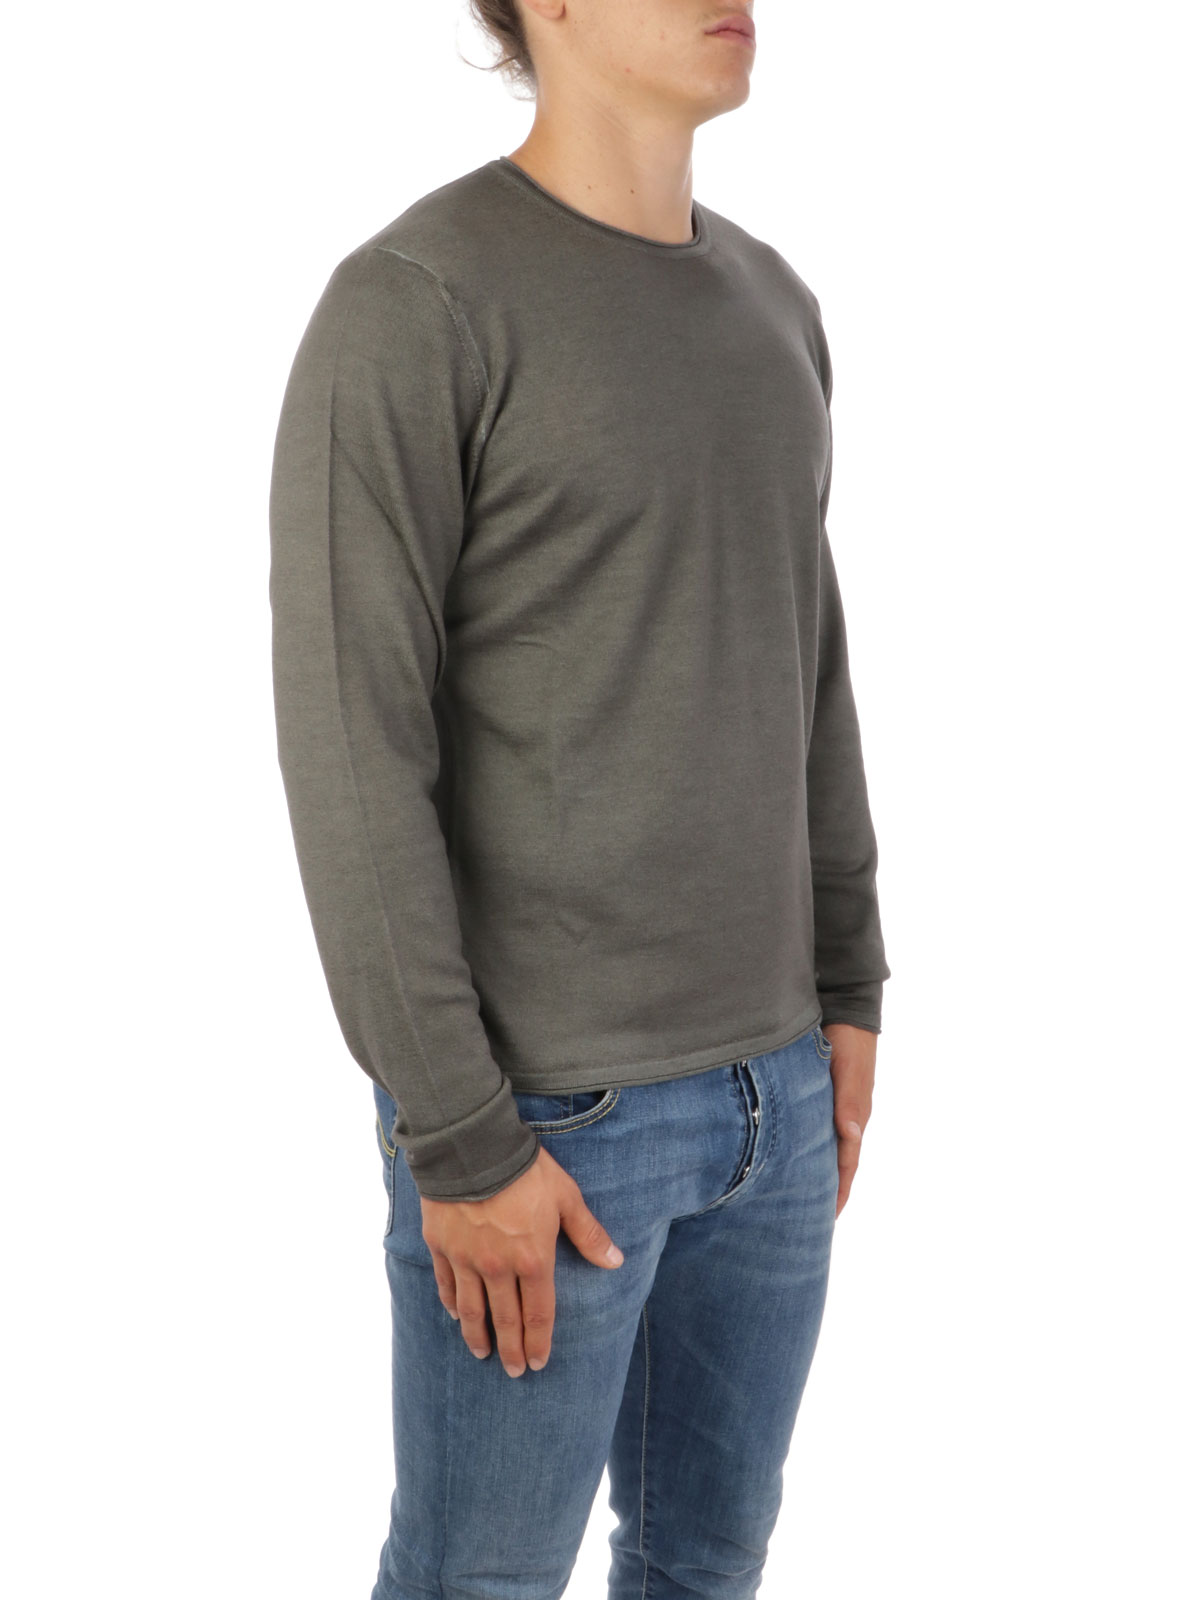 Picture of Brooksfield | Jersey Knitwear Crewneck